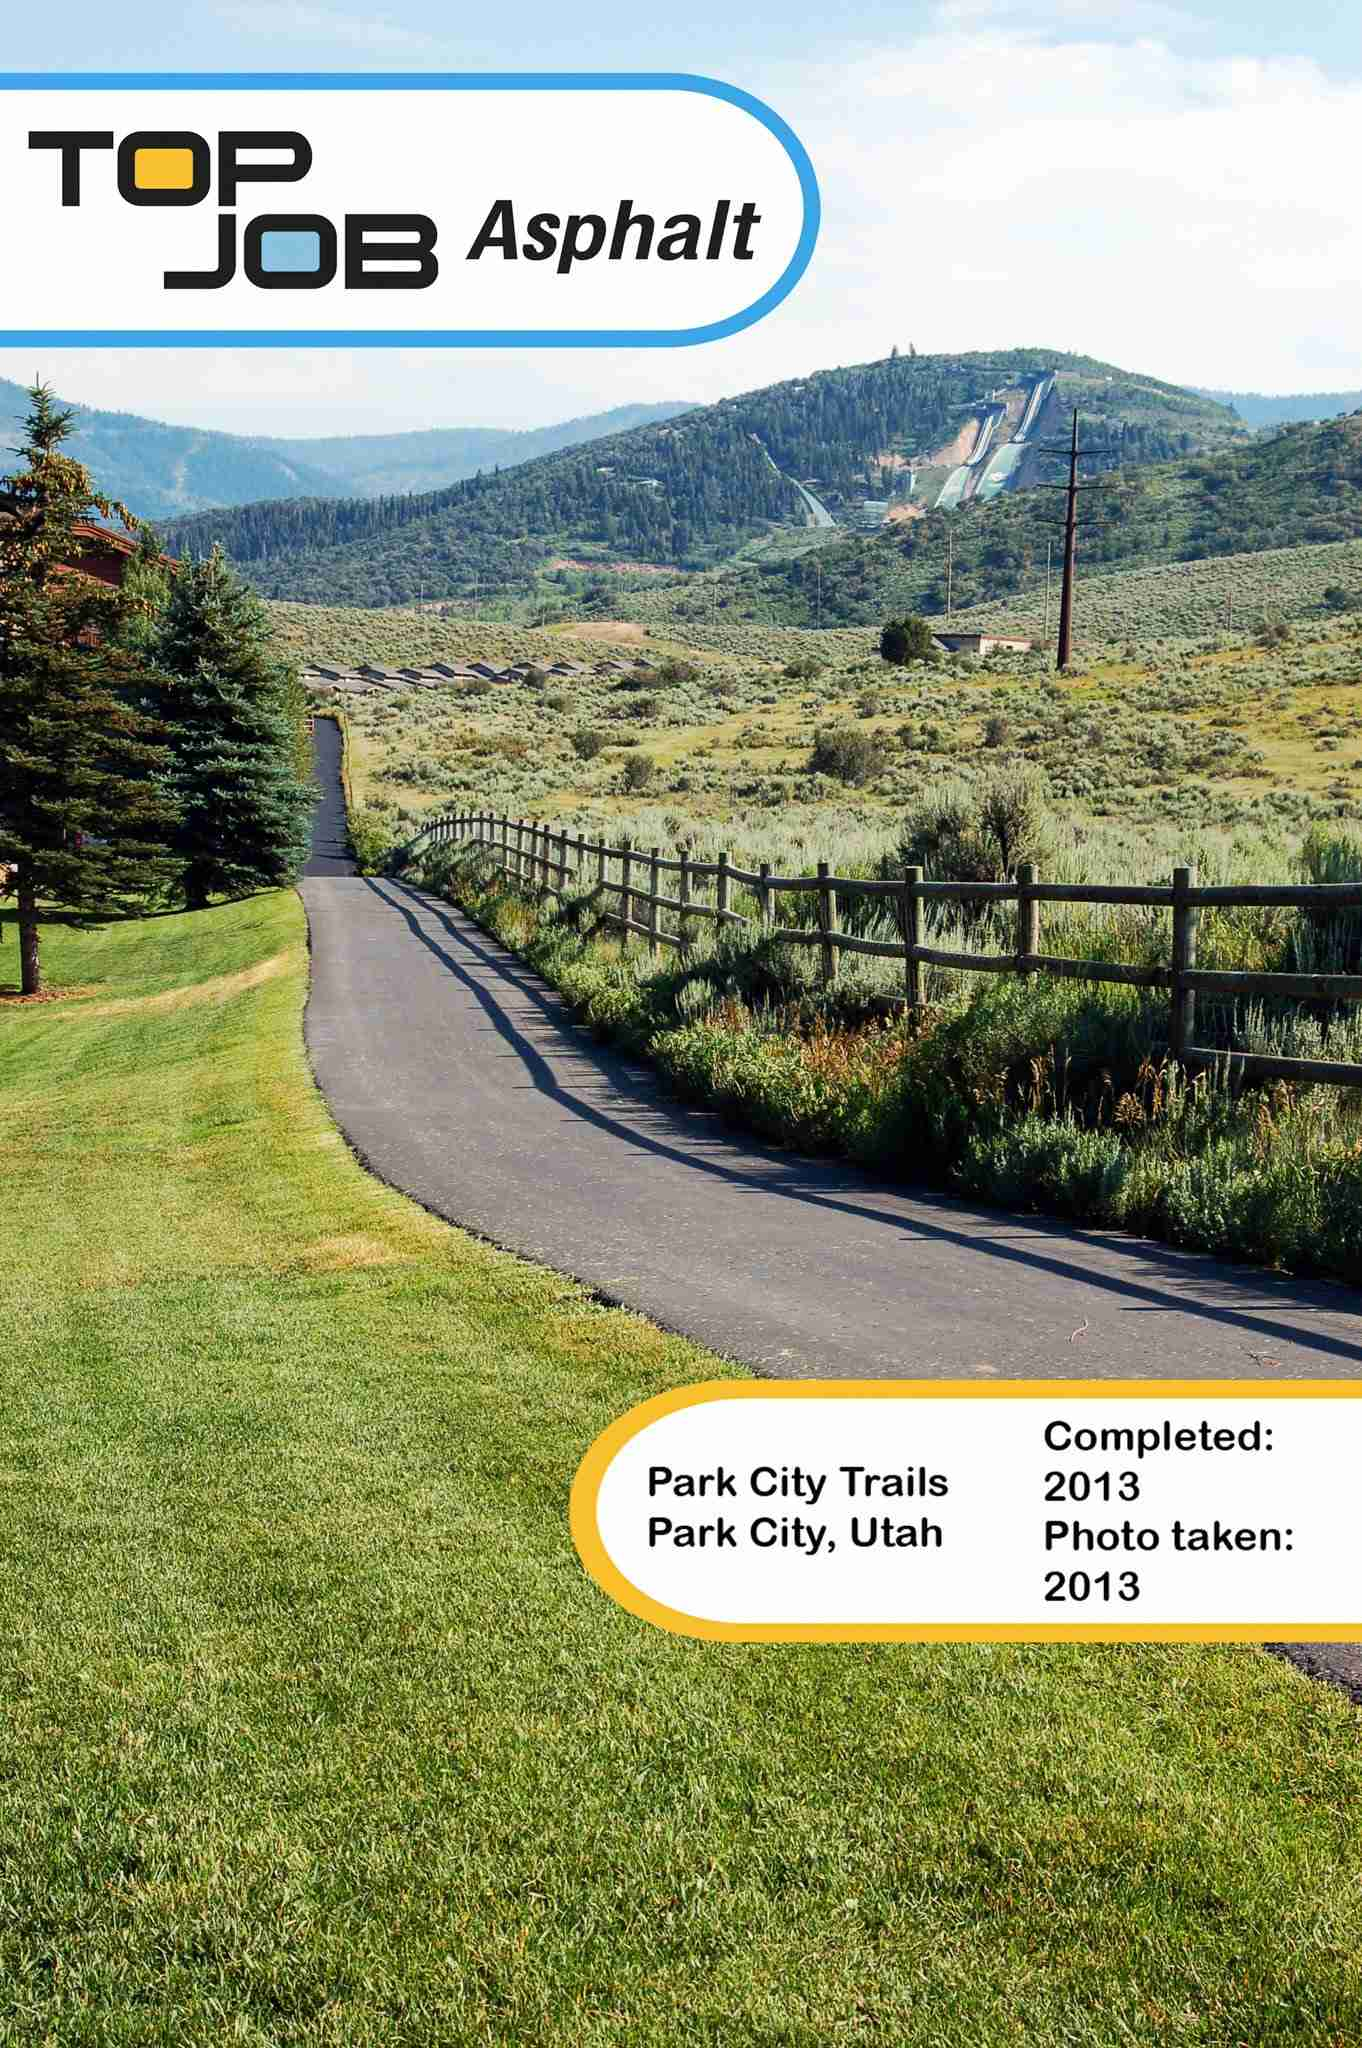 Top Job Asphalt - Park City Trails 2013 Sealcoat